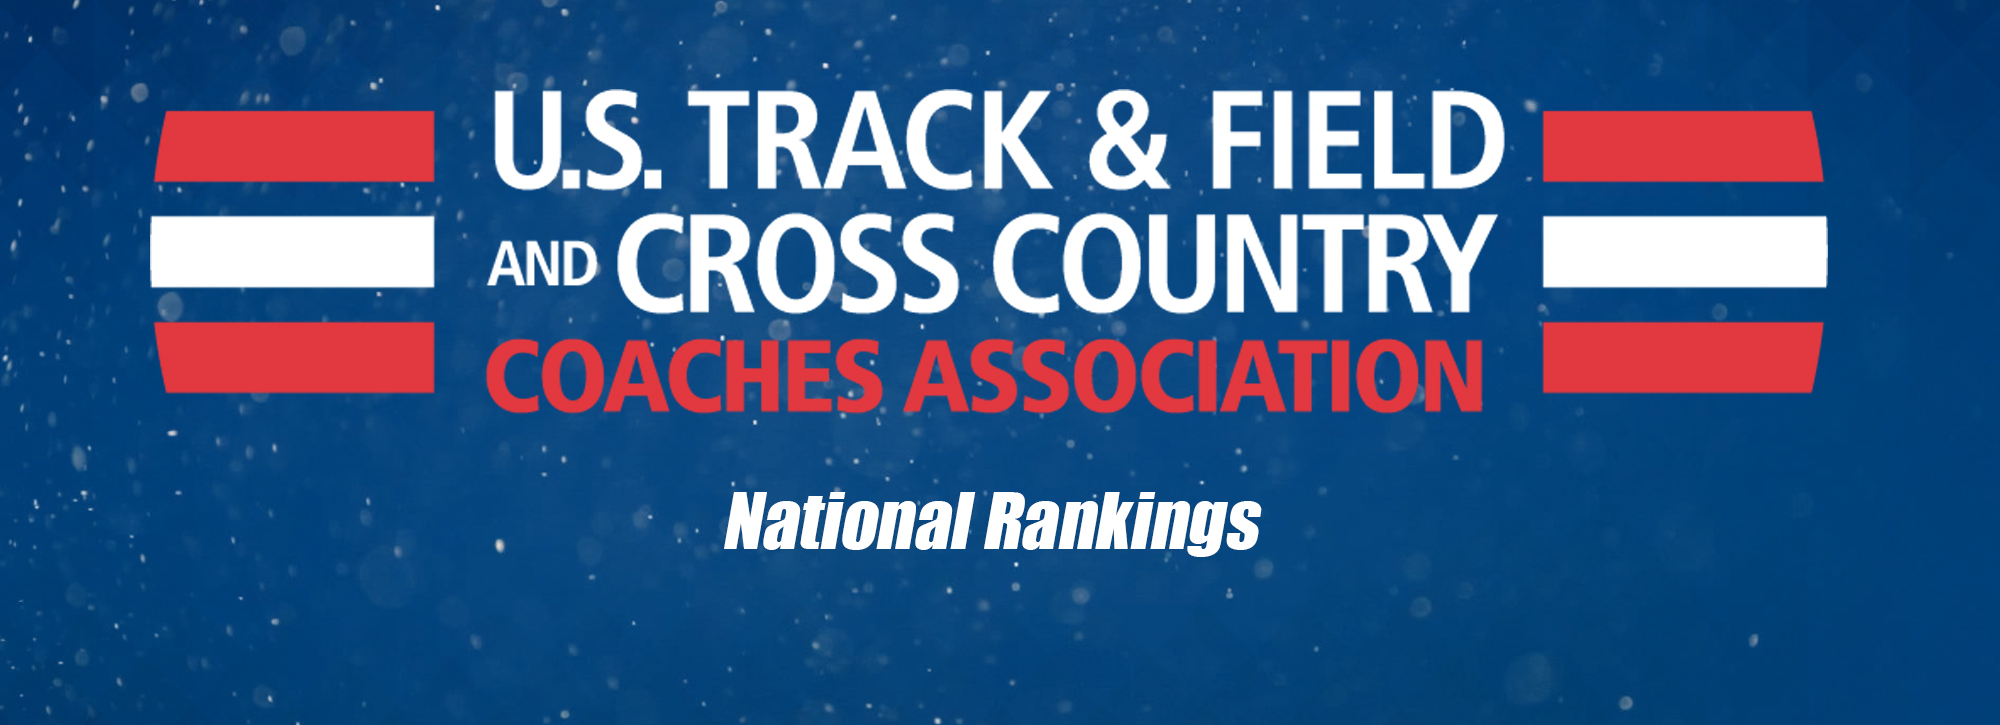 USTFCCCA announces ITF pre-season rankings